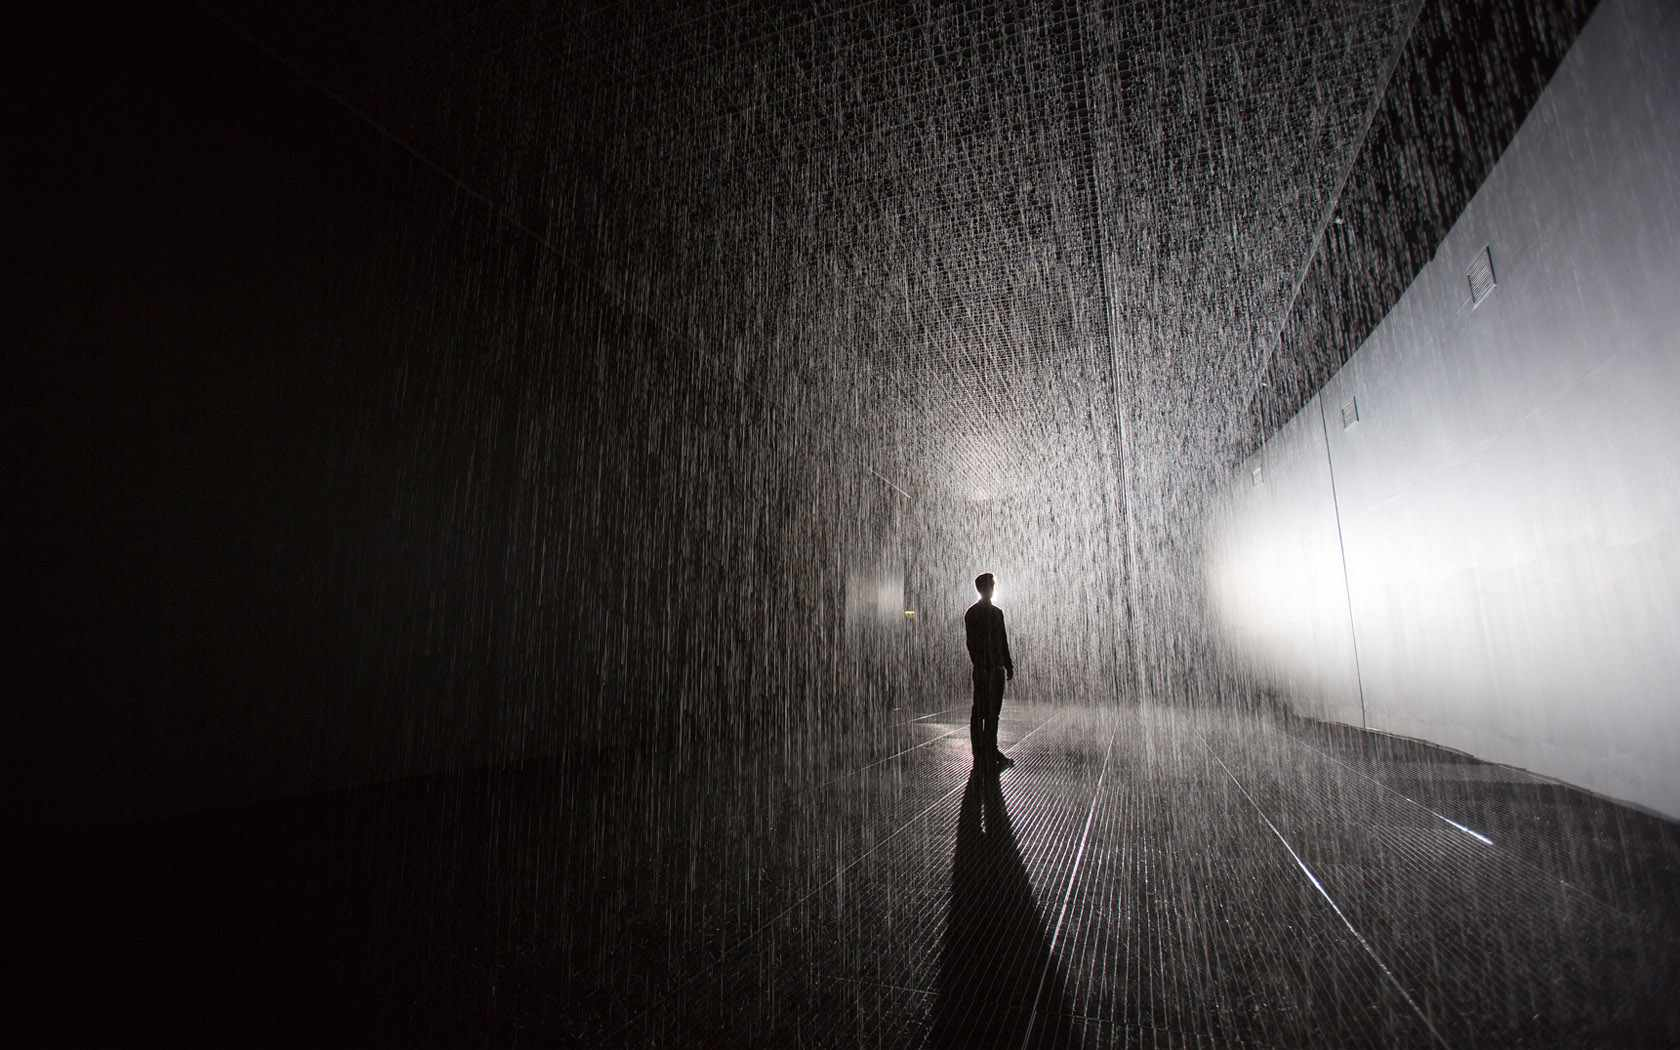 Artist warns of health risks as fake Rain Rooms spring up across China